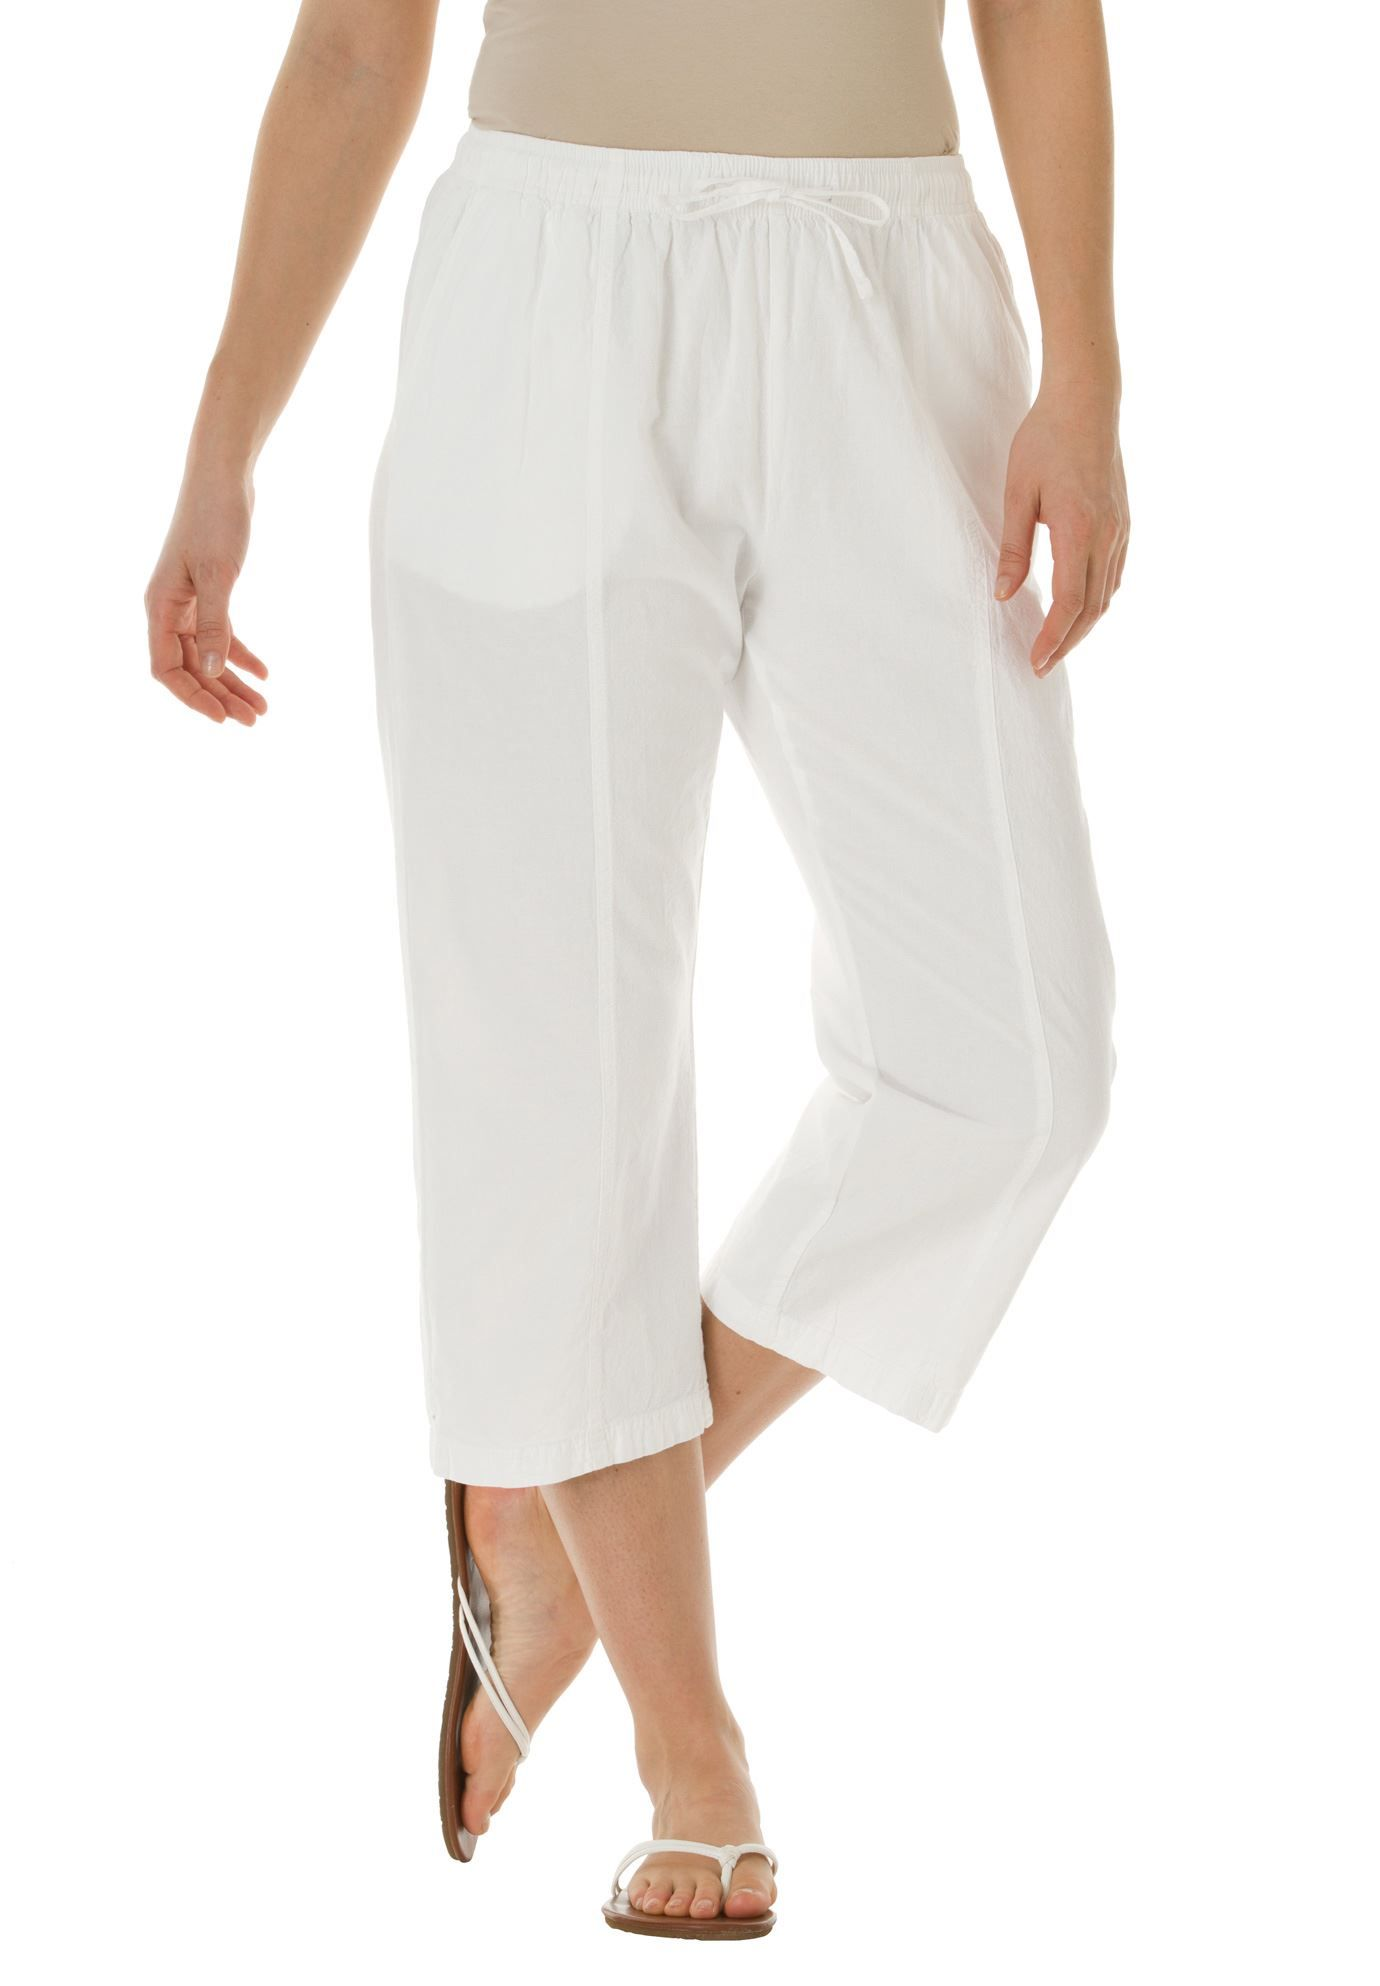 Plus size cotton capris that are comfy, casual and great for mild ...